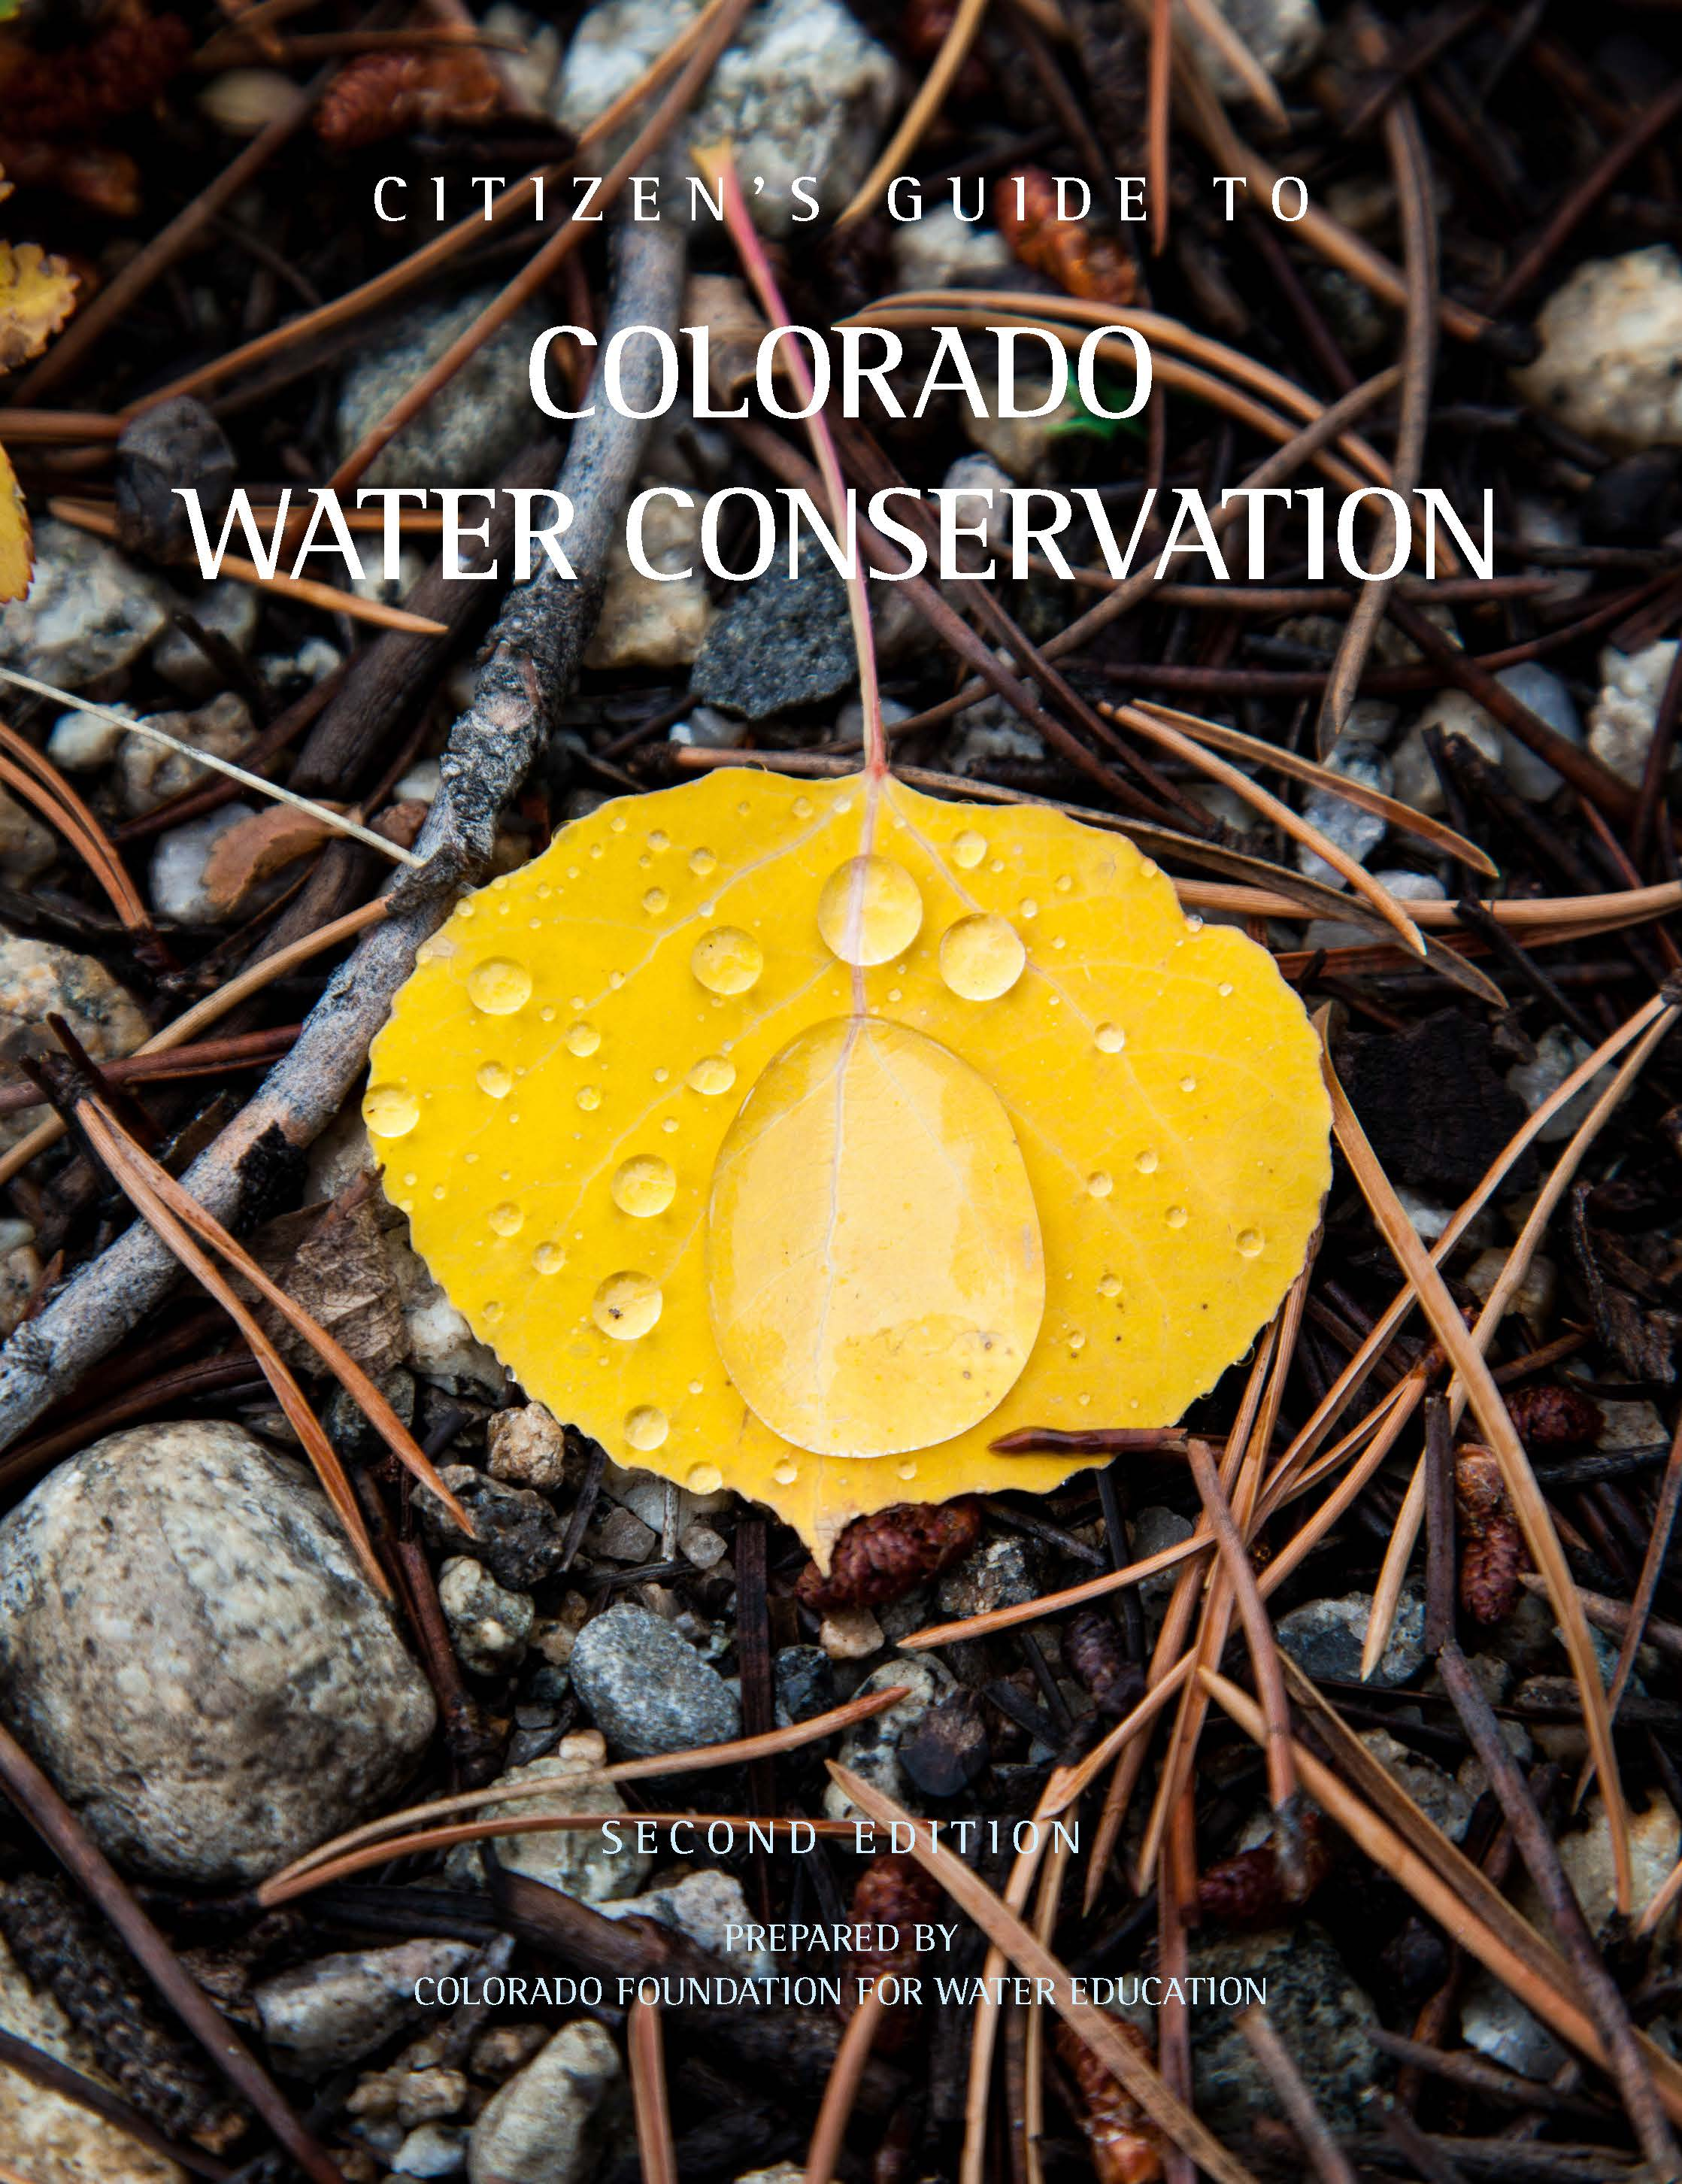 Citizen's Guide to Colorado Water Conservation